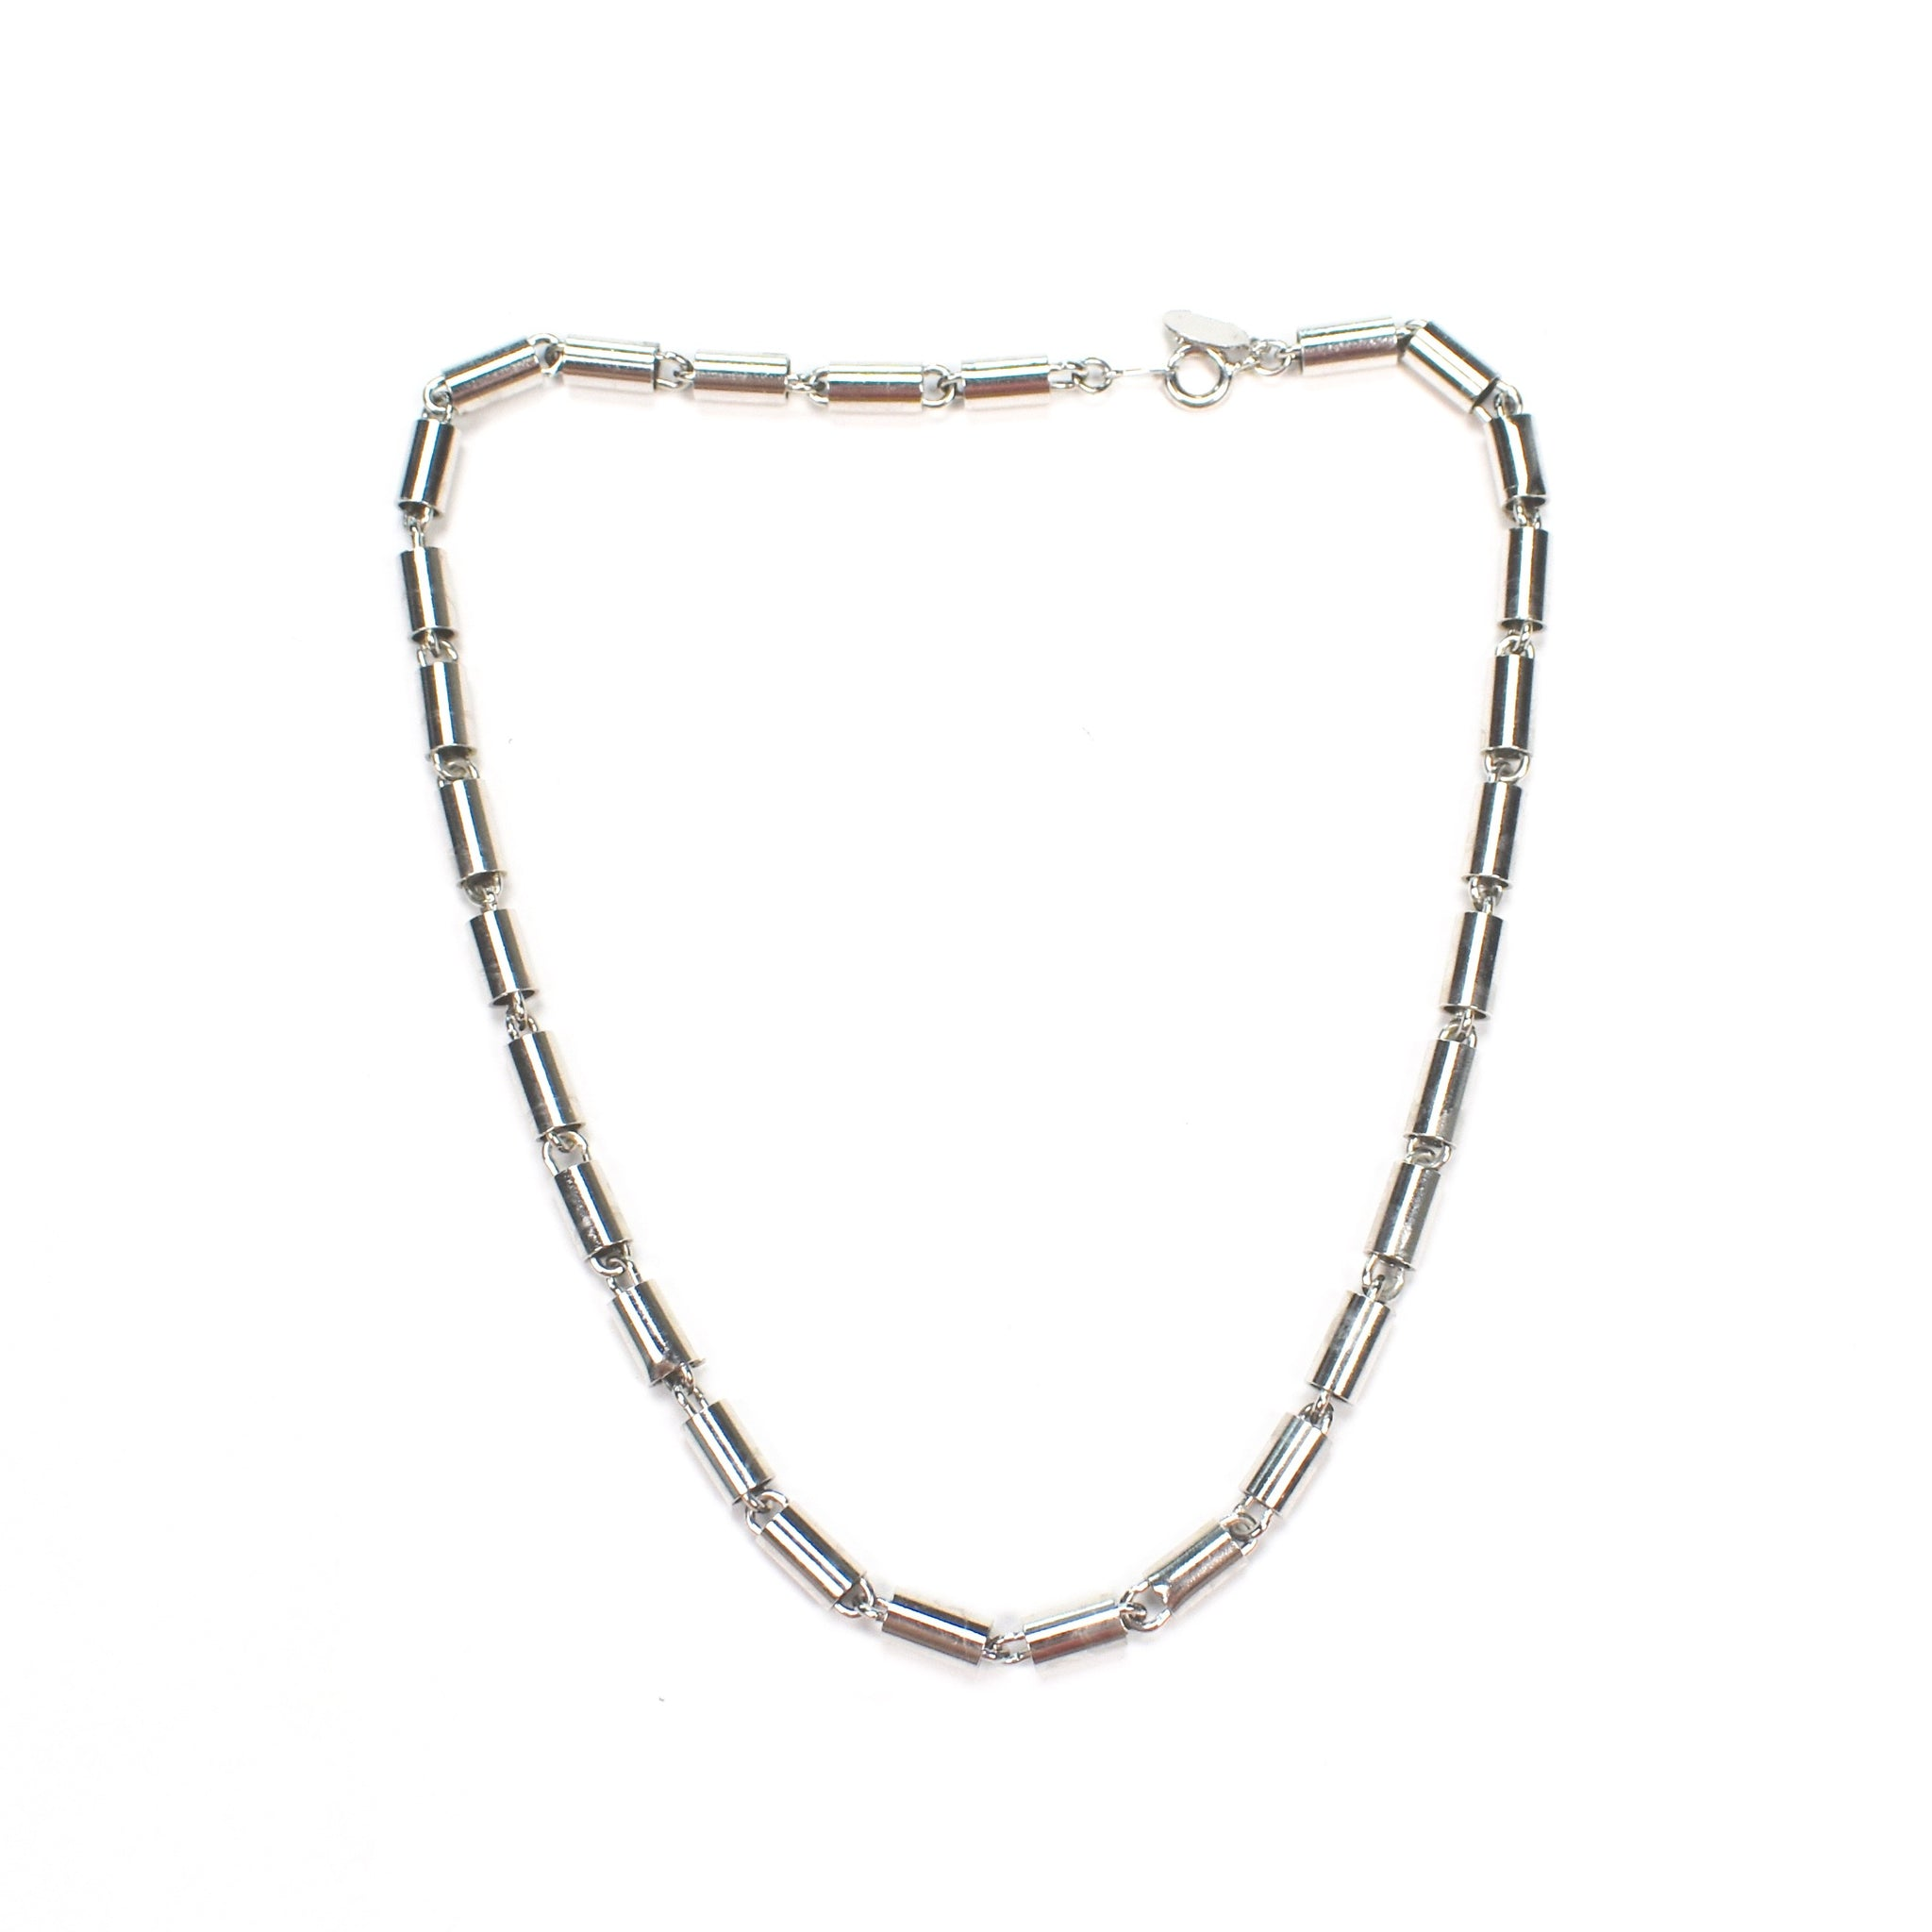 Givenchy - 1976 Silver Chain Necklace